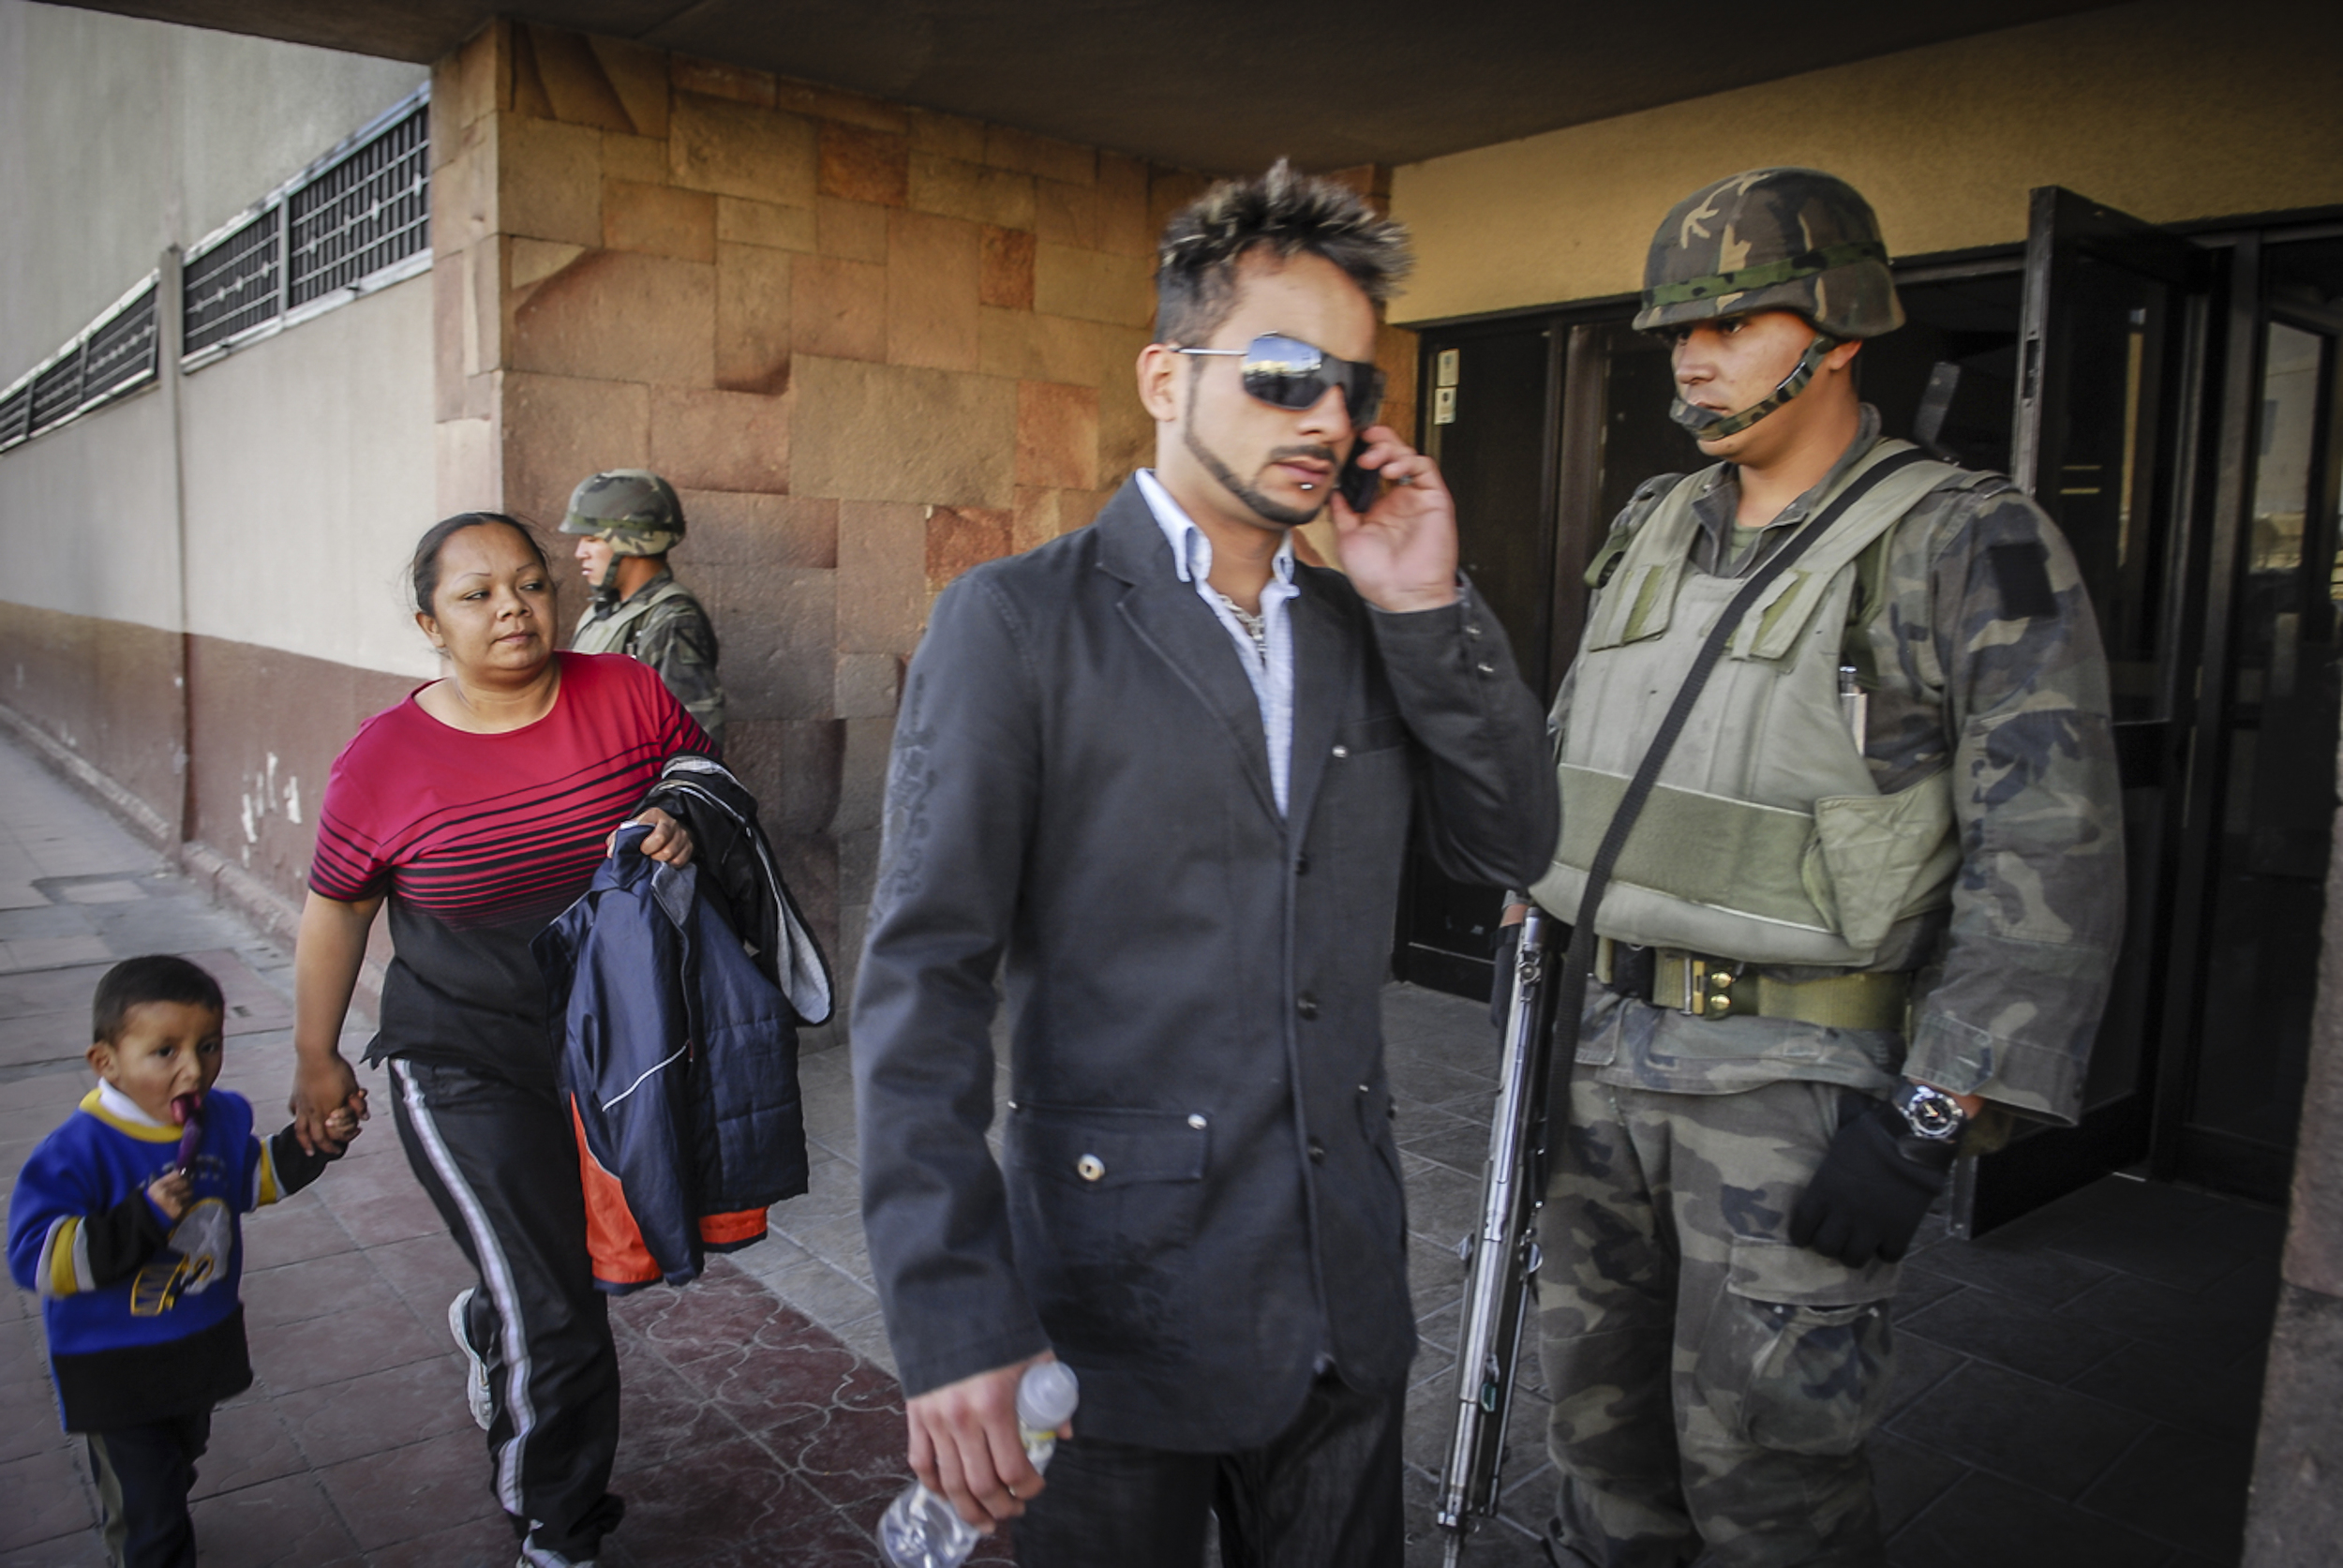 Juarenzes deal with the militarization of their town